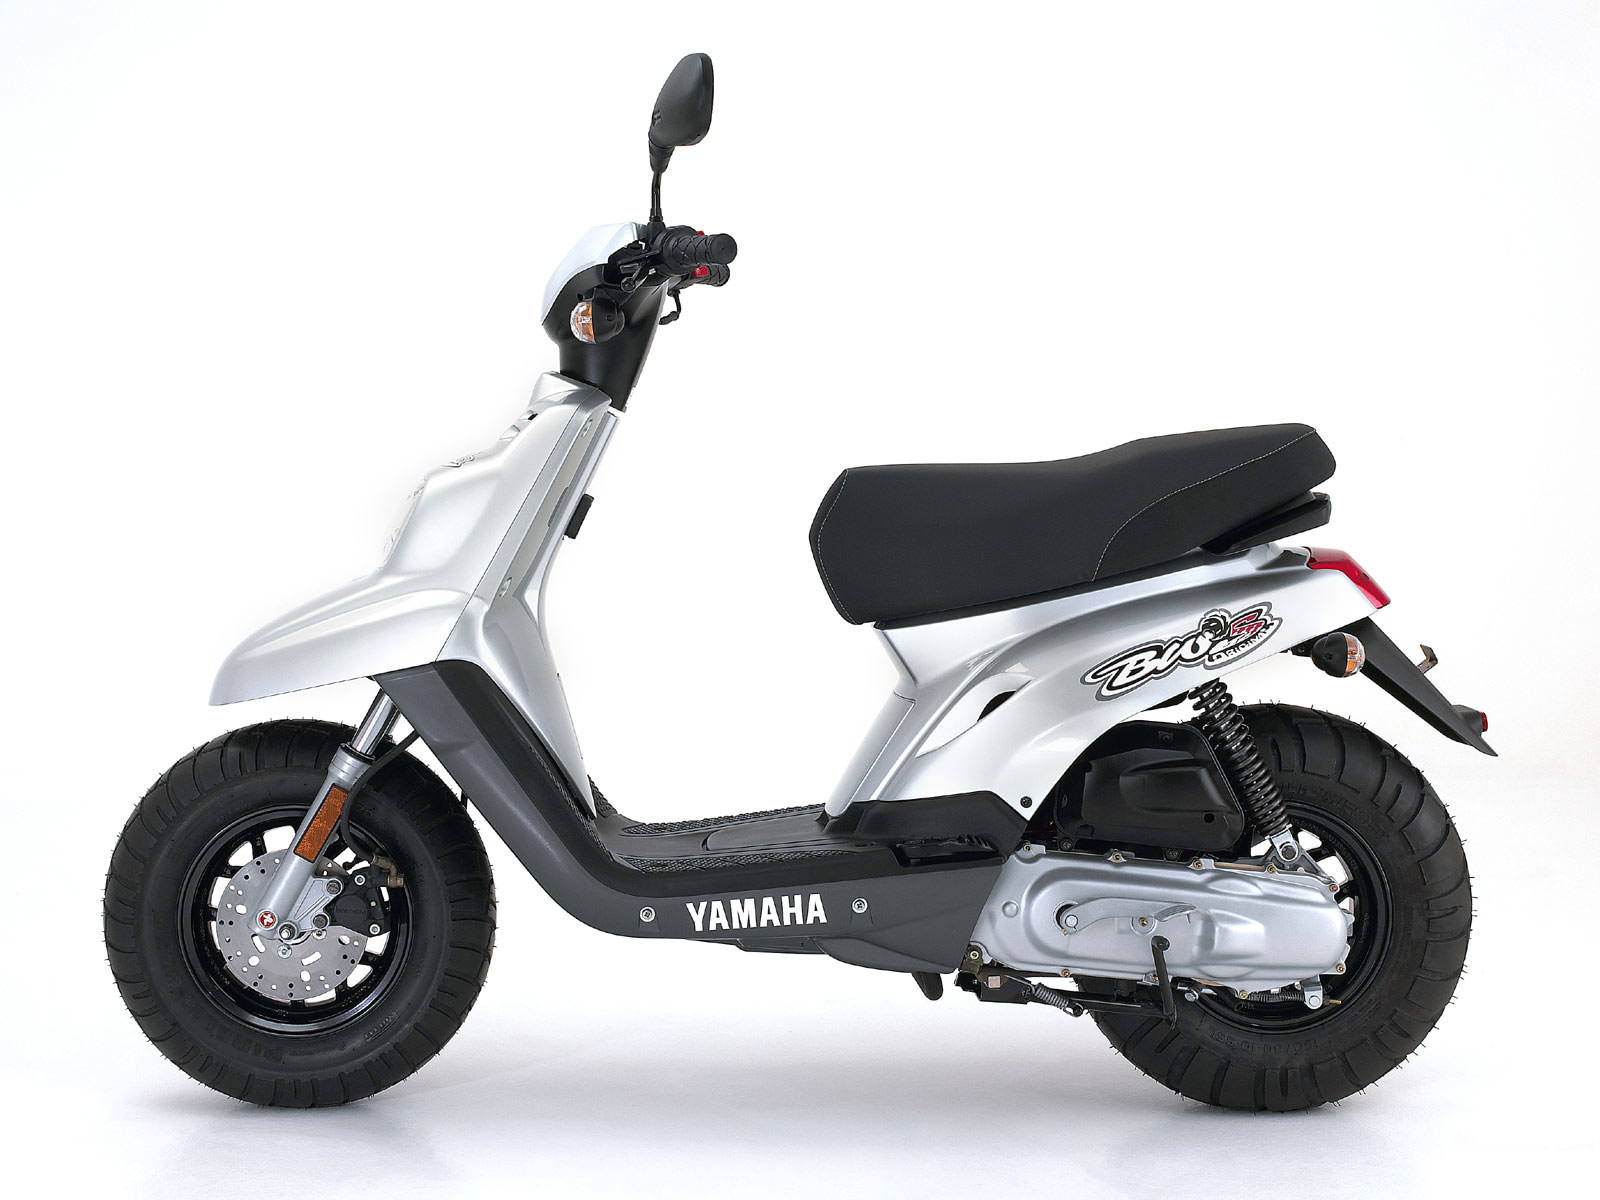 2005 yamaha bws scooter pictures insurance information. Black Bedroom Furniture Sets. Home Design Ideas